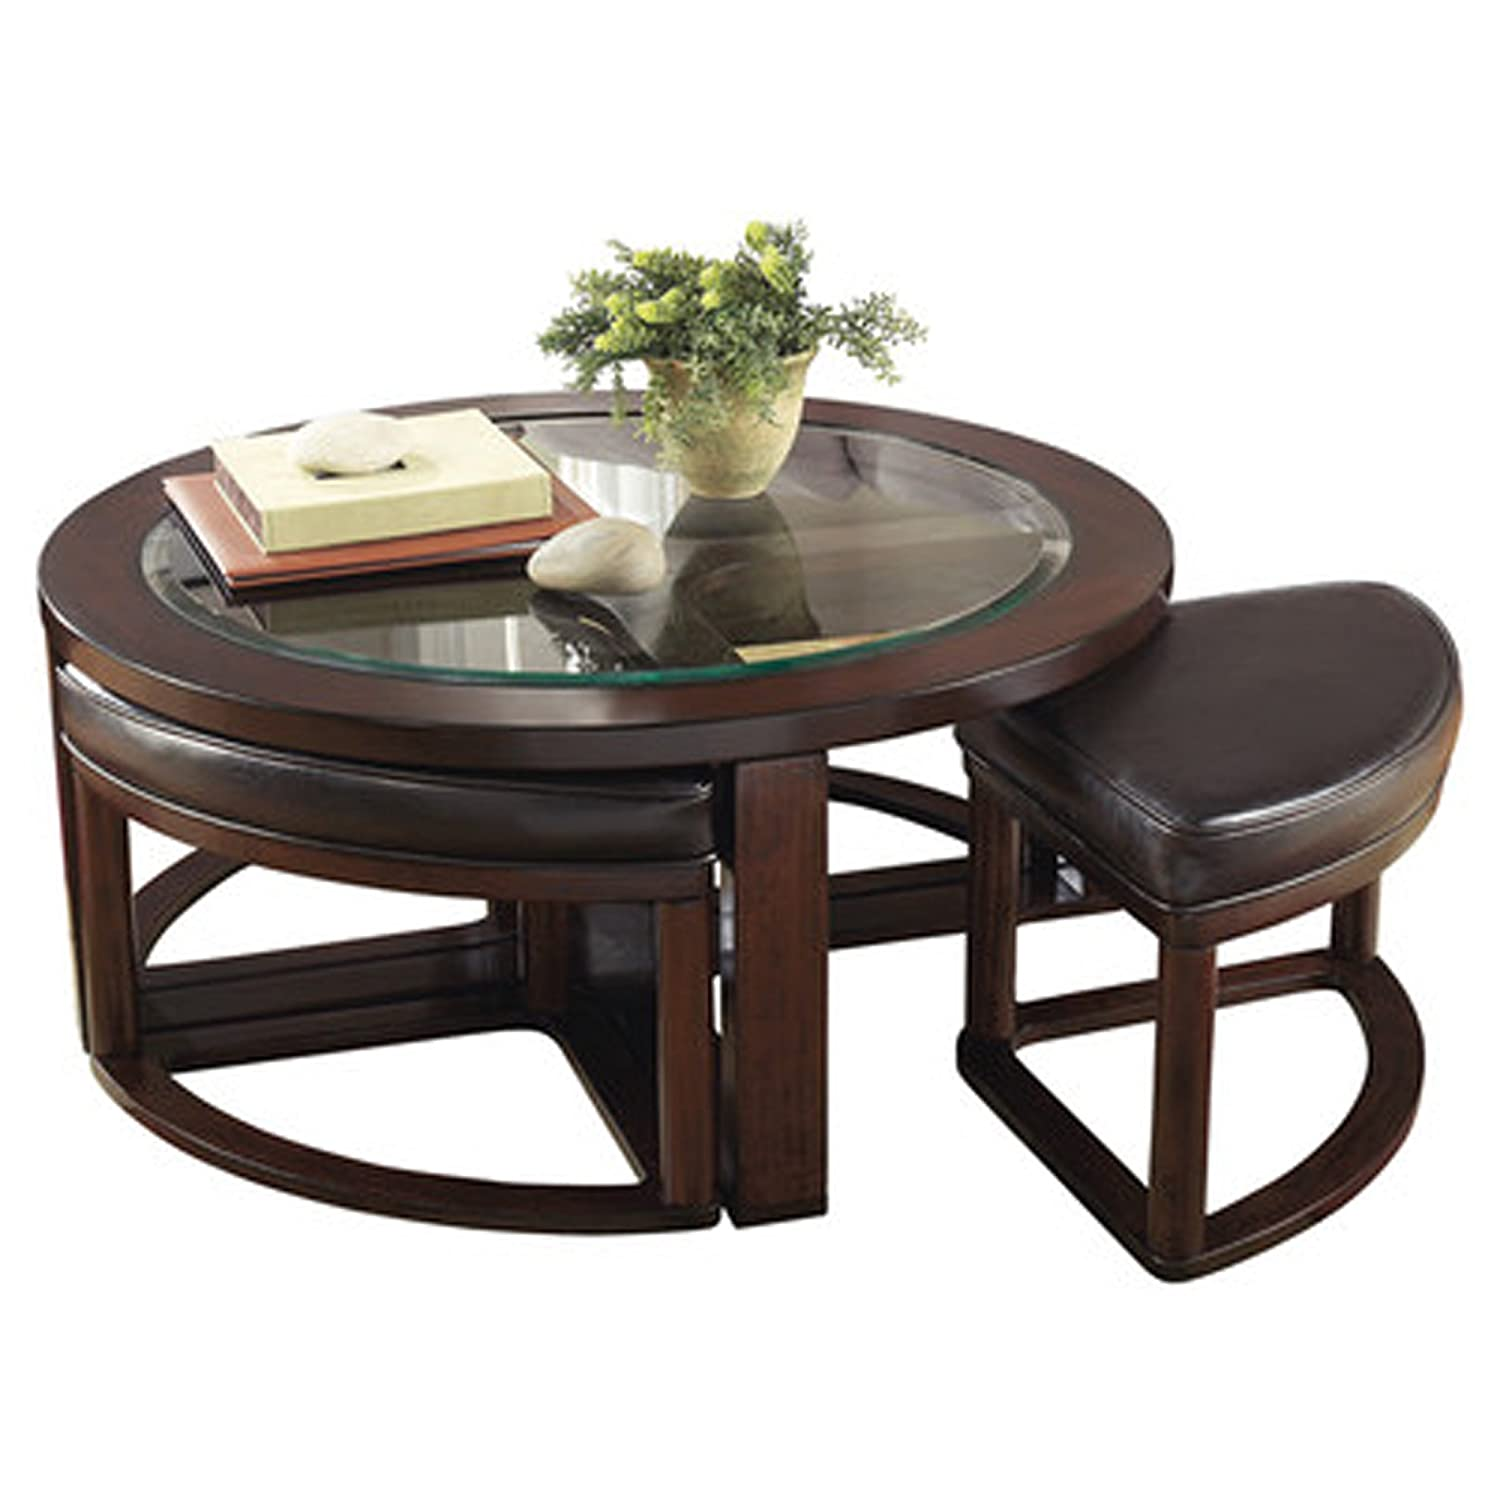 Amazon Thornburgh 5 Piece Coffee Table & Stool Set Dark Brown